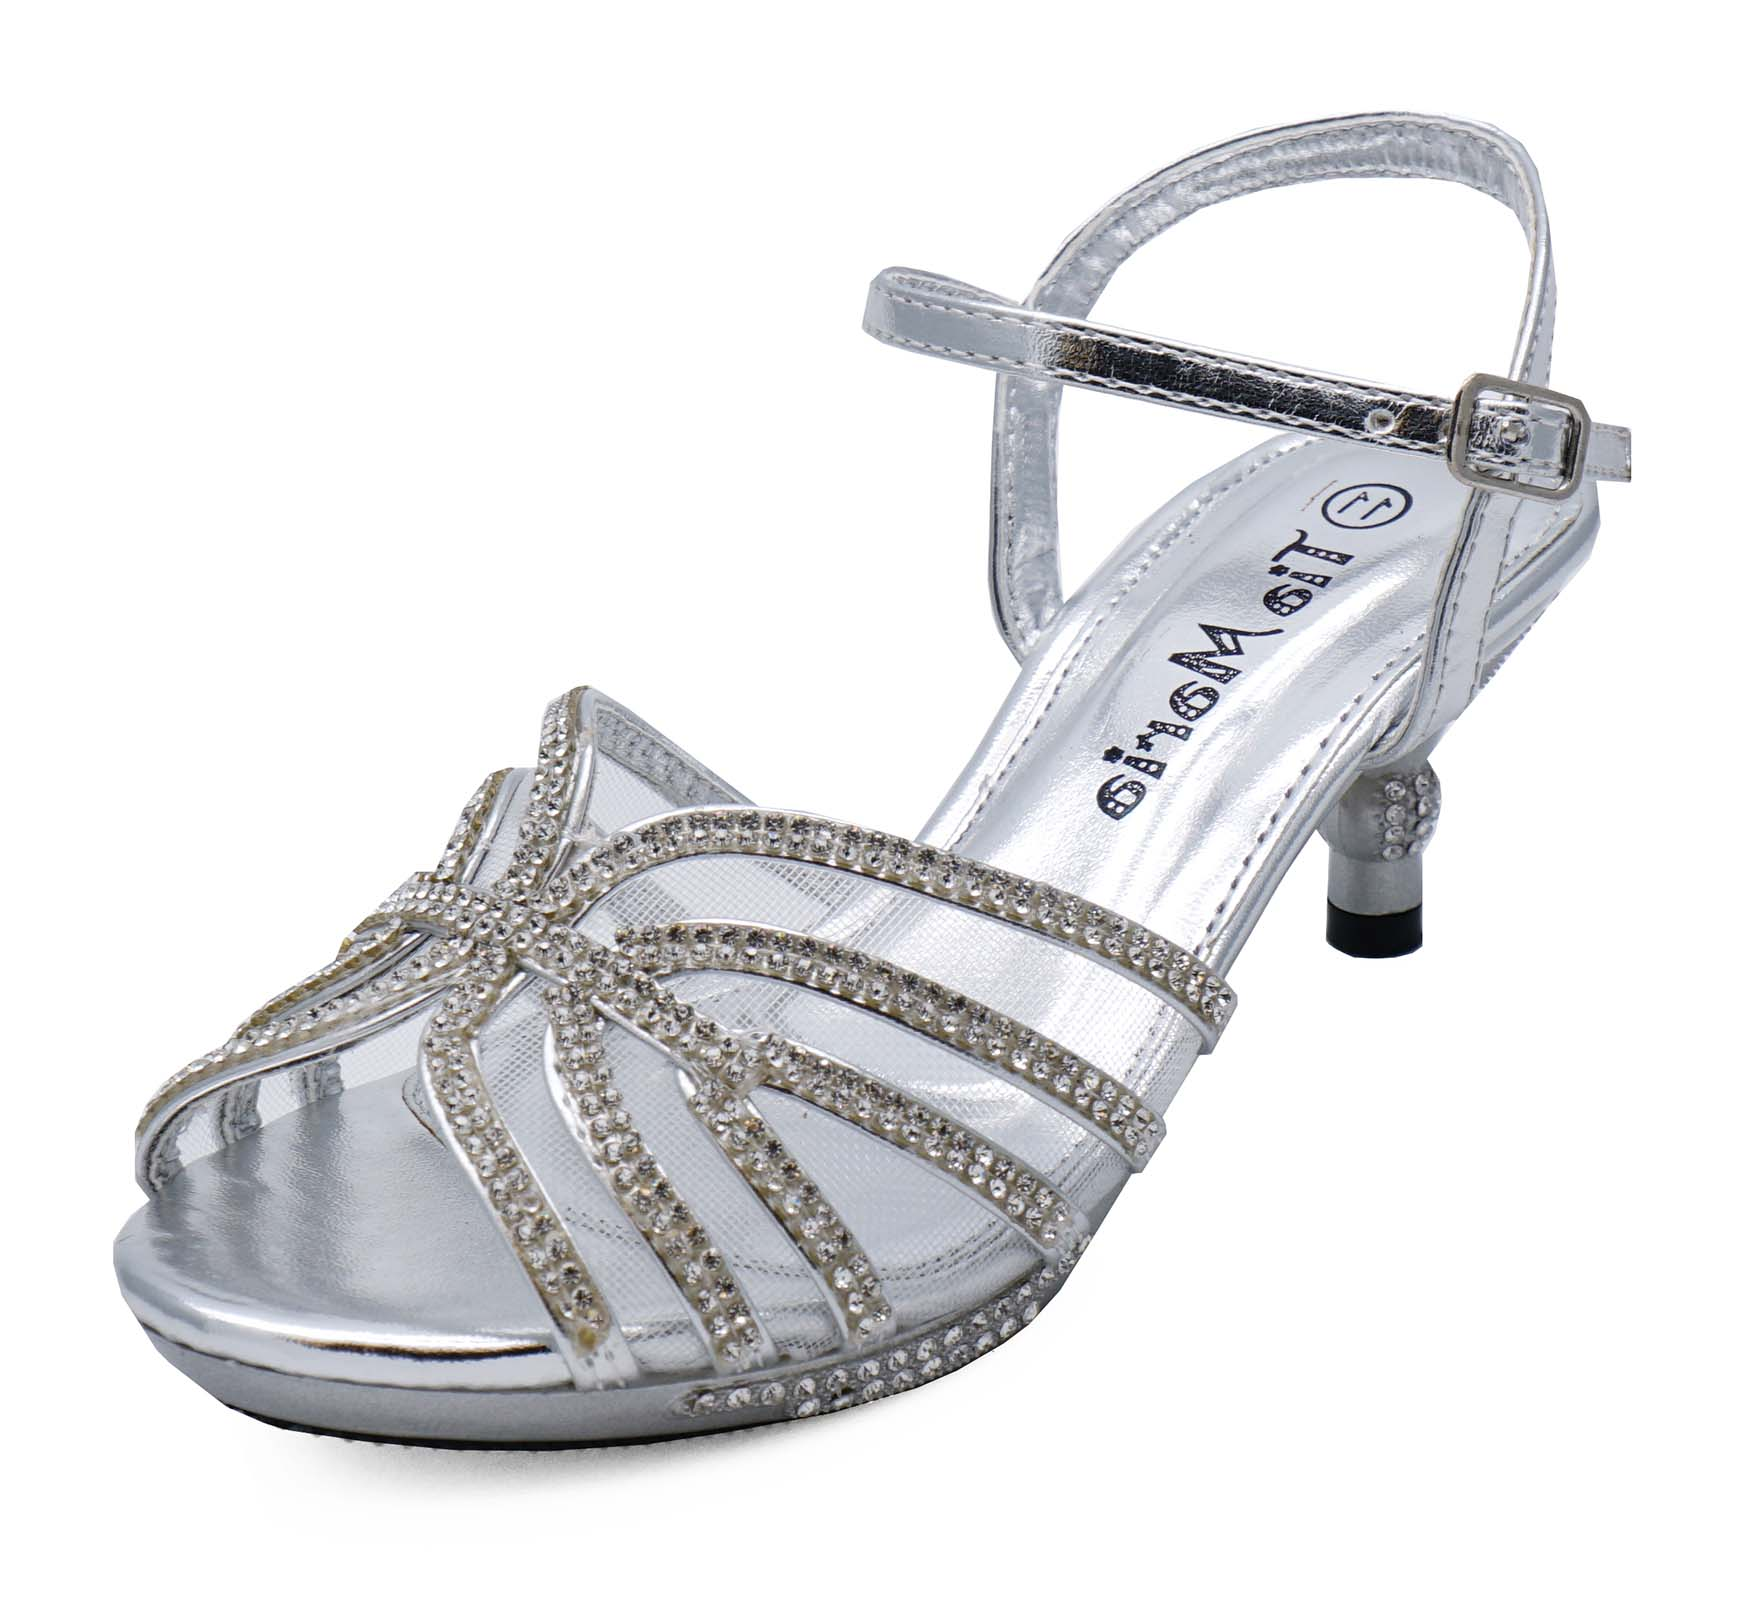 b08e8c132a Sentinel GIRLS CHILDRENS SILVER DIAMANTE LOW-HEEL SANDALS PRETTY PARTY  DRESS SHOES 10-2